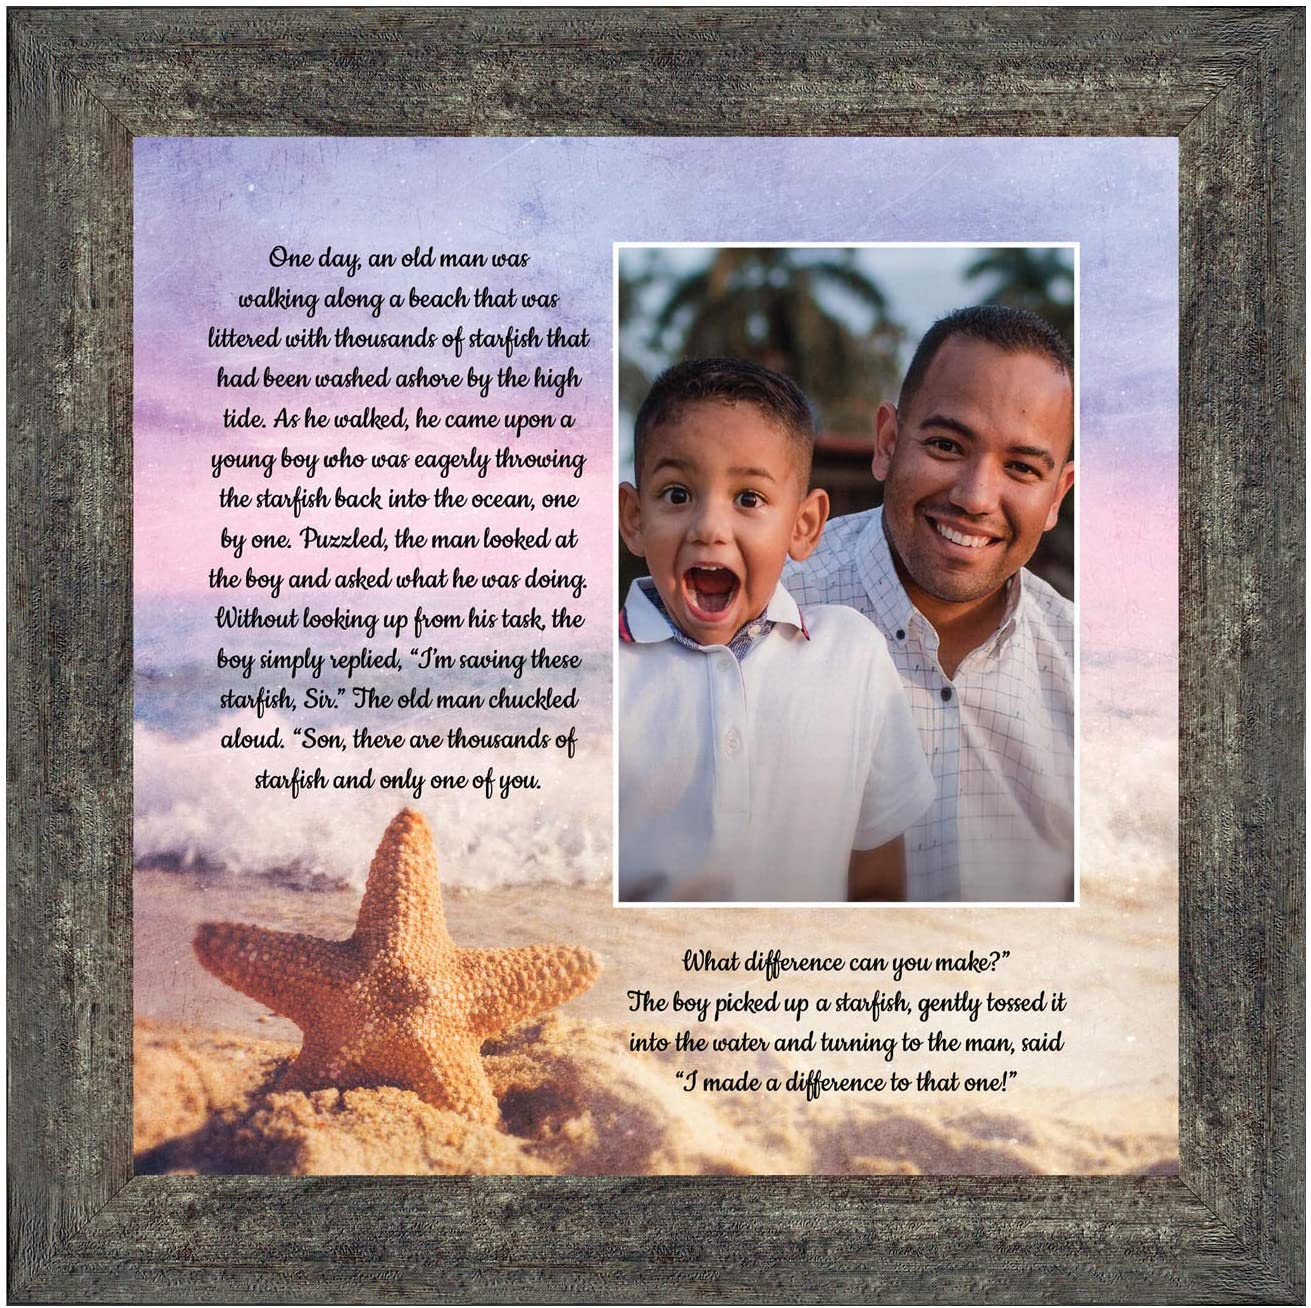 Crossroads Home Décor The Starfish Story, You Make a Difference, Ocean Decor, 6396BW